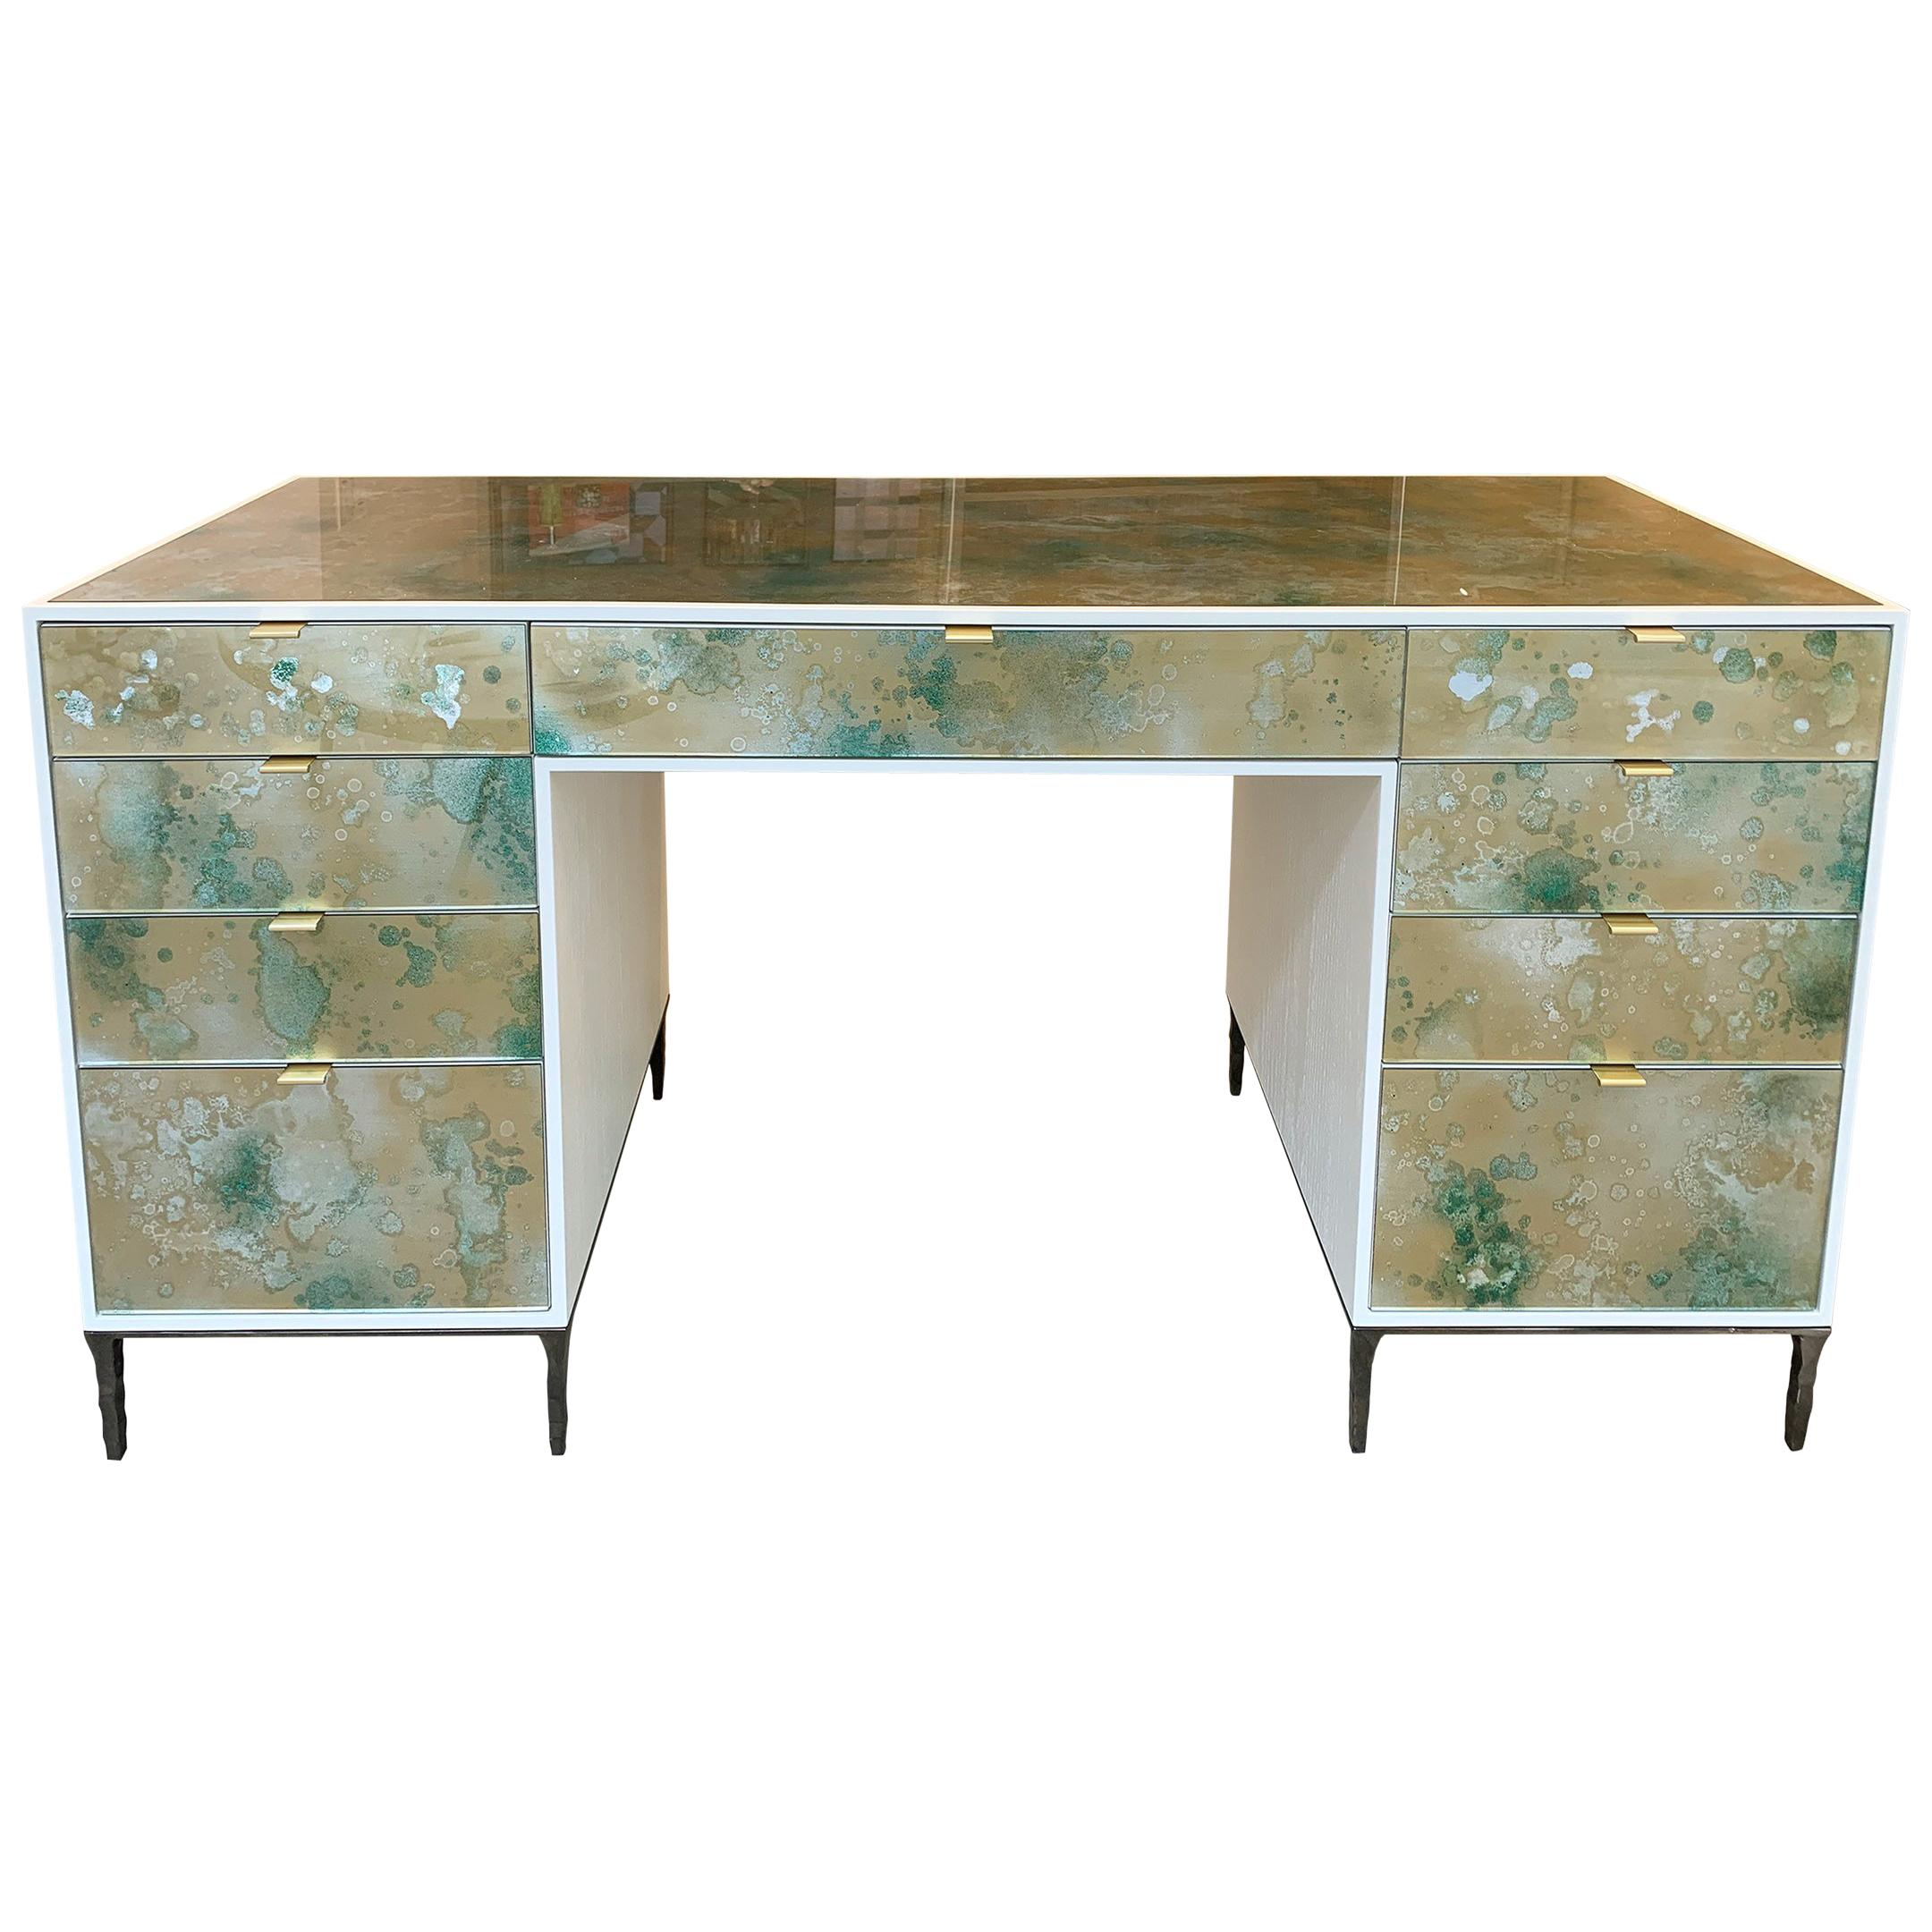 Customizable Contemporary Eglomise Glass Byzantine Gold Vanity by Ercole Home 2